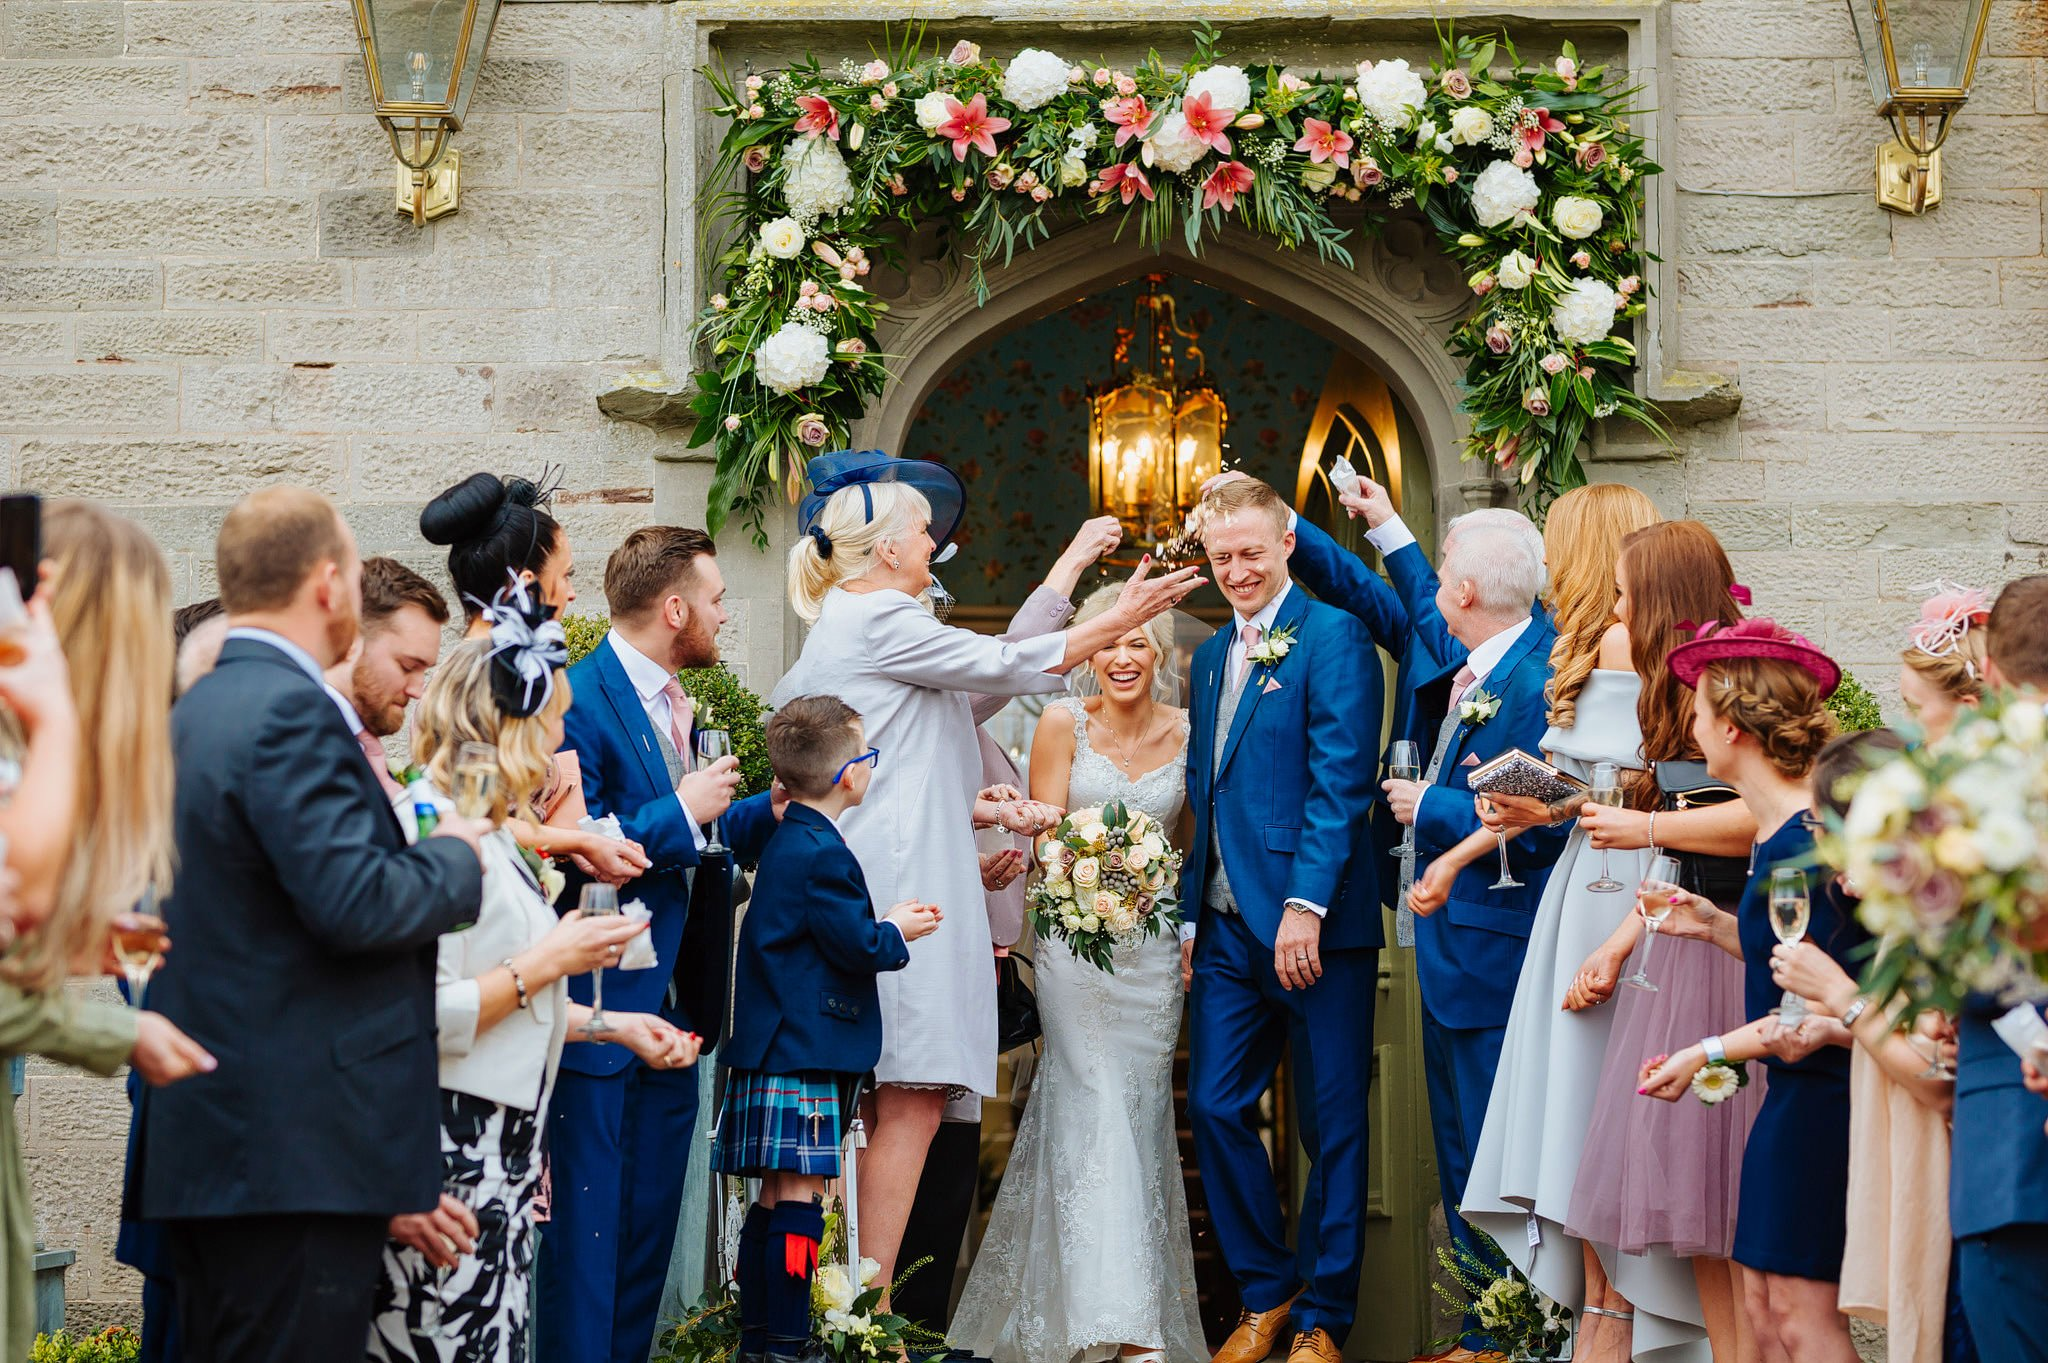 sigma 85mm art review wedding photography 107 - Sigma 85mm F1.4 ART review vs Wedding Photography